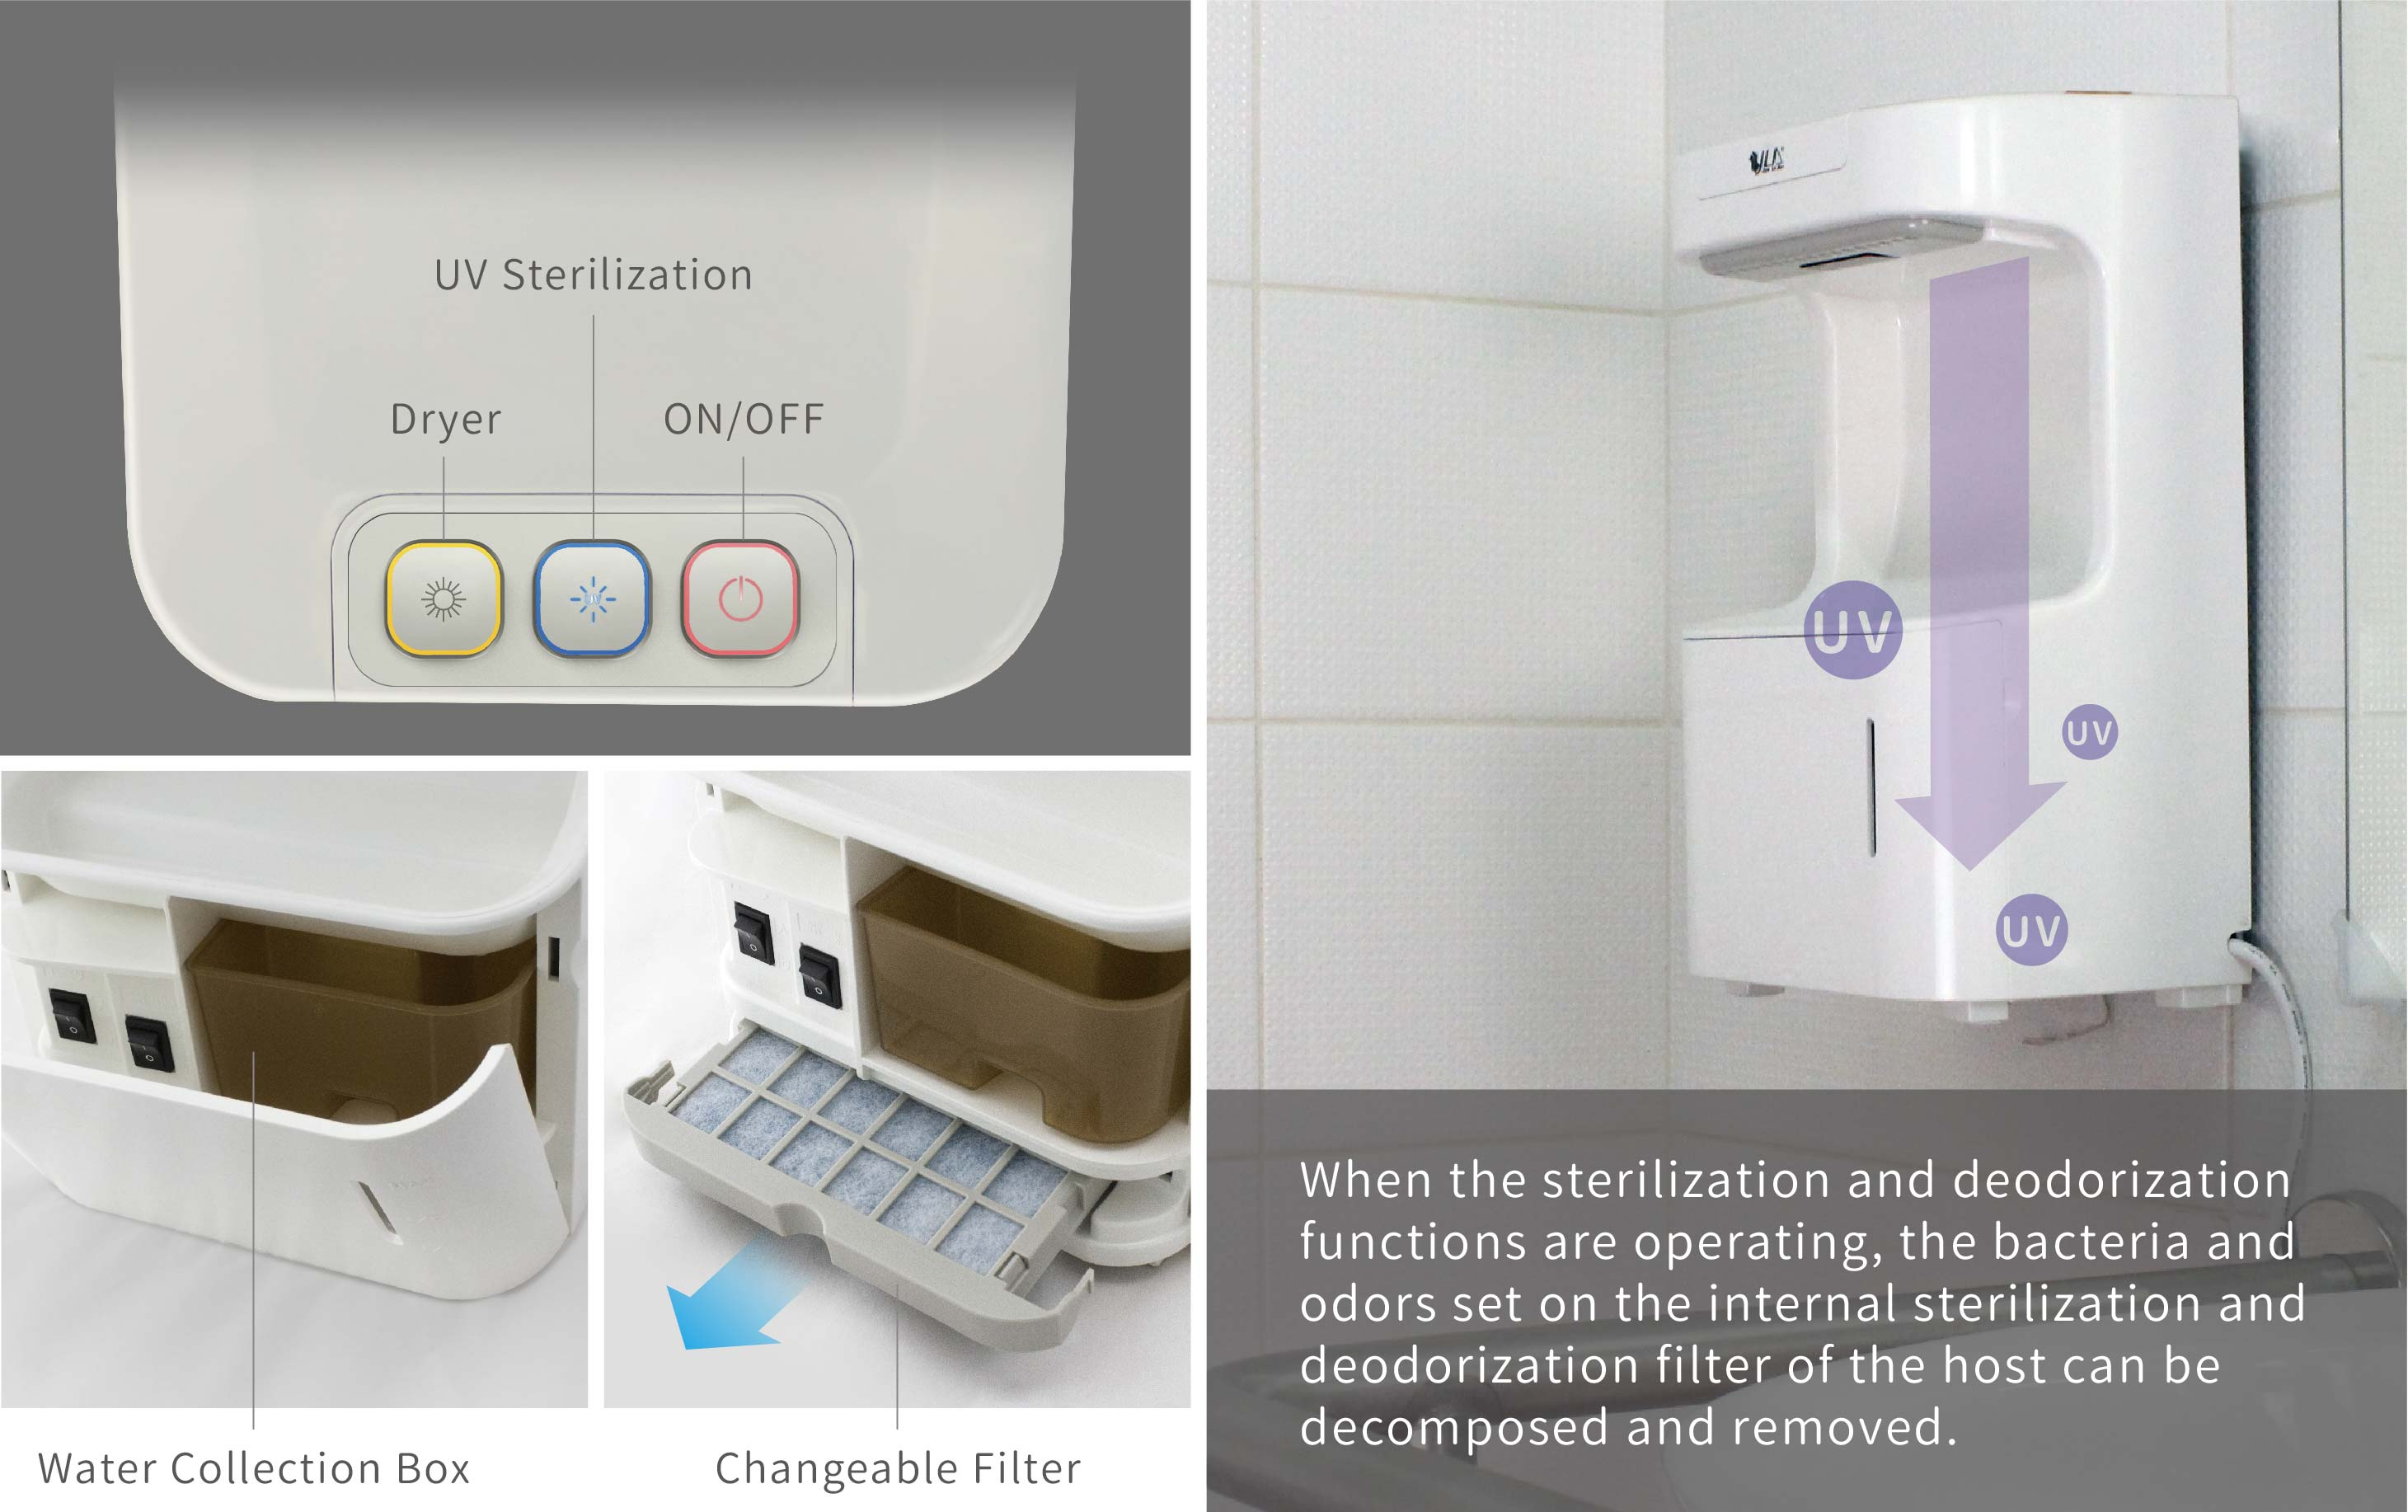 When the sterilization and deodorization functions are operating, the bacteria and deodorization filter of the host can be decomposed and removed.